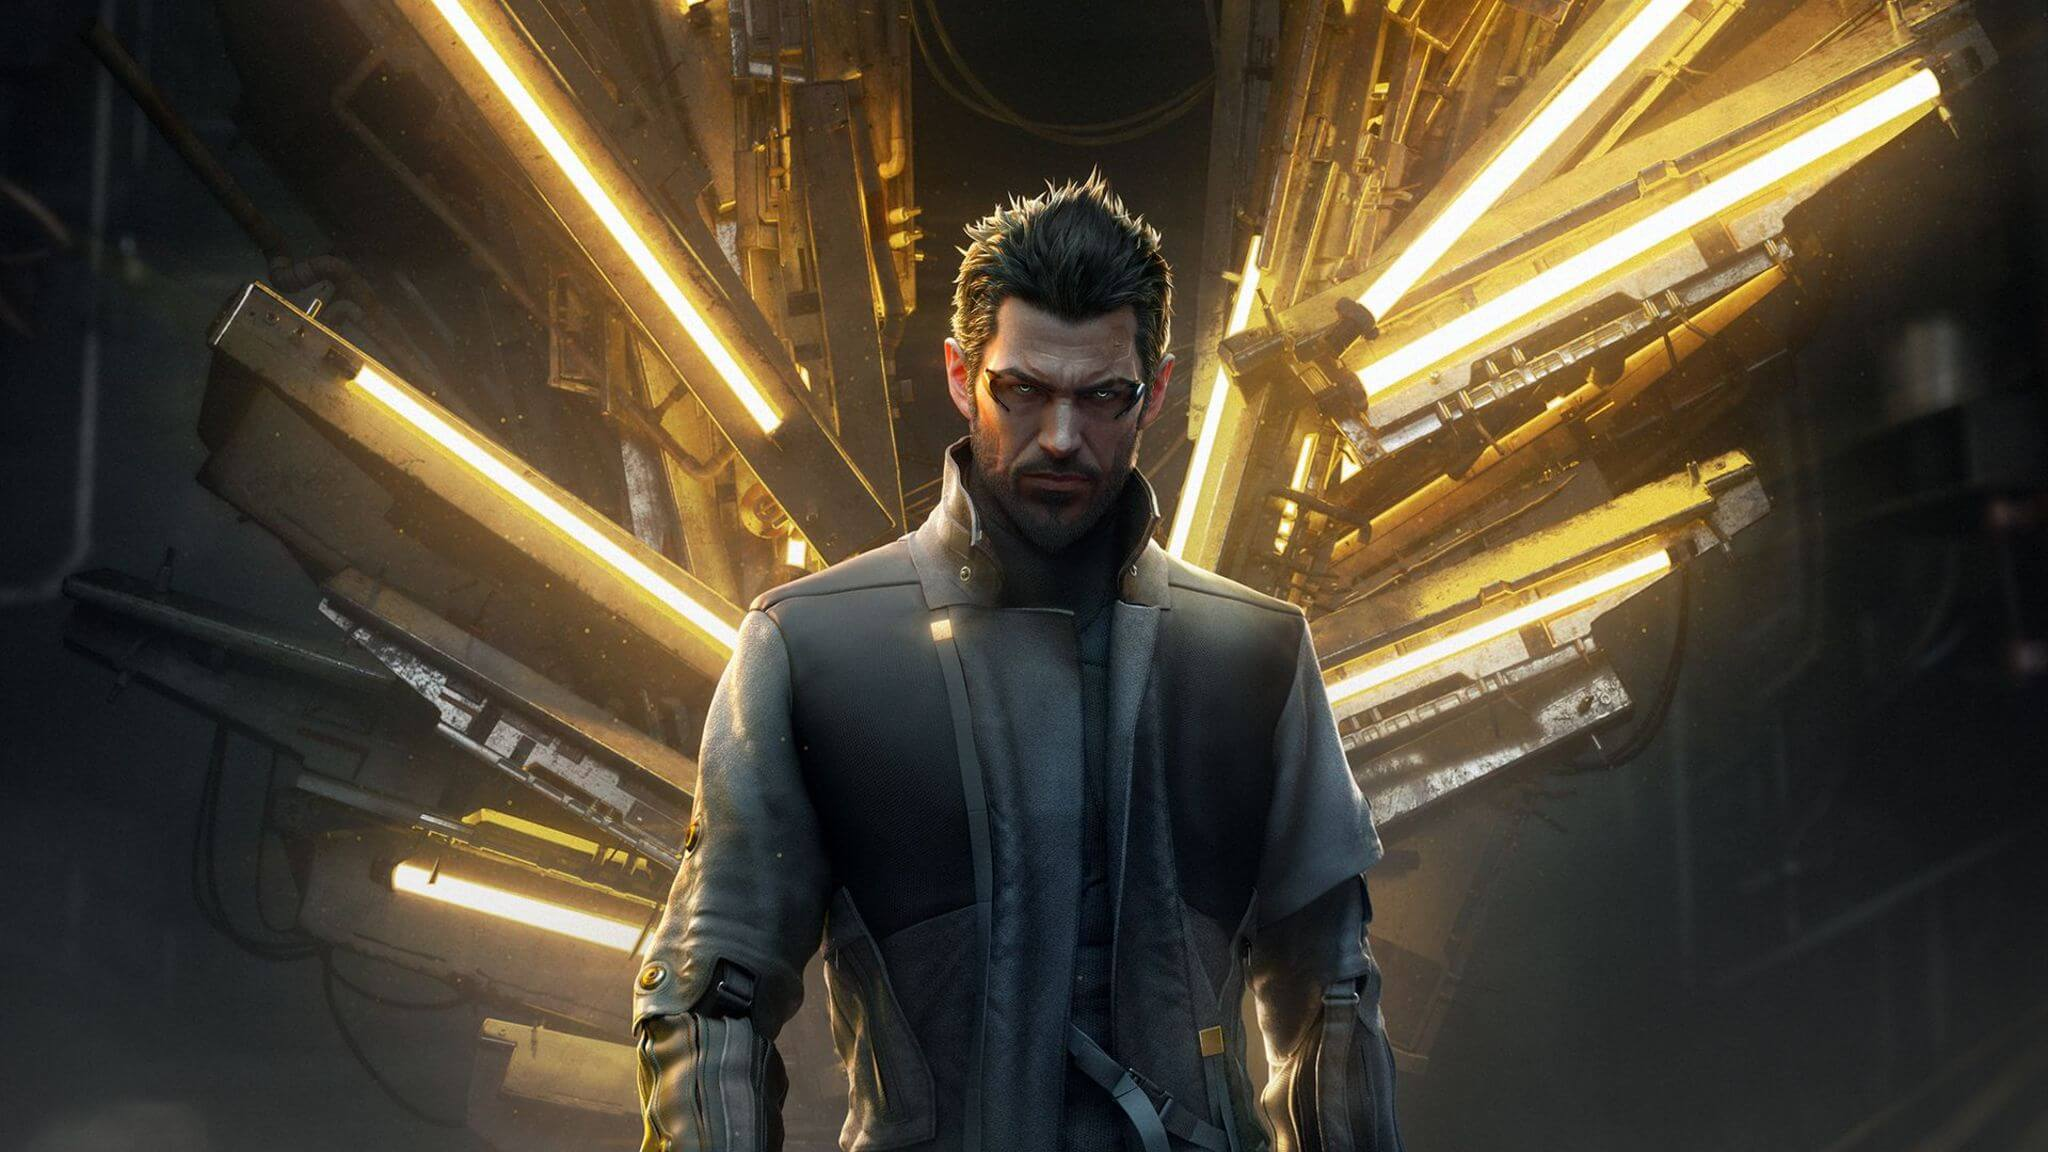 Deus Ex: Mankind Divided has been already released